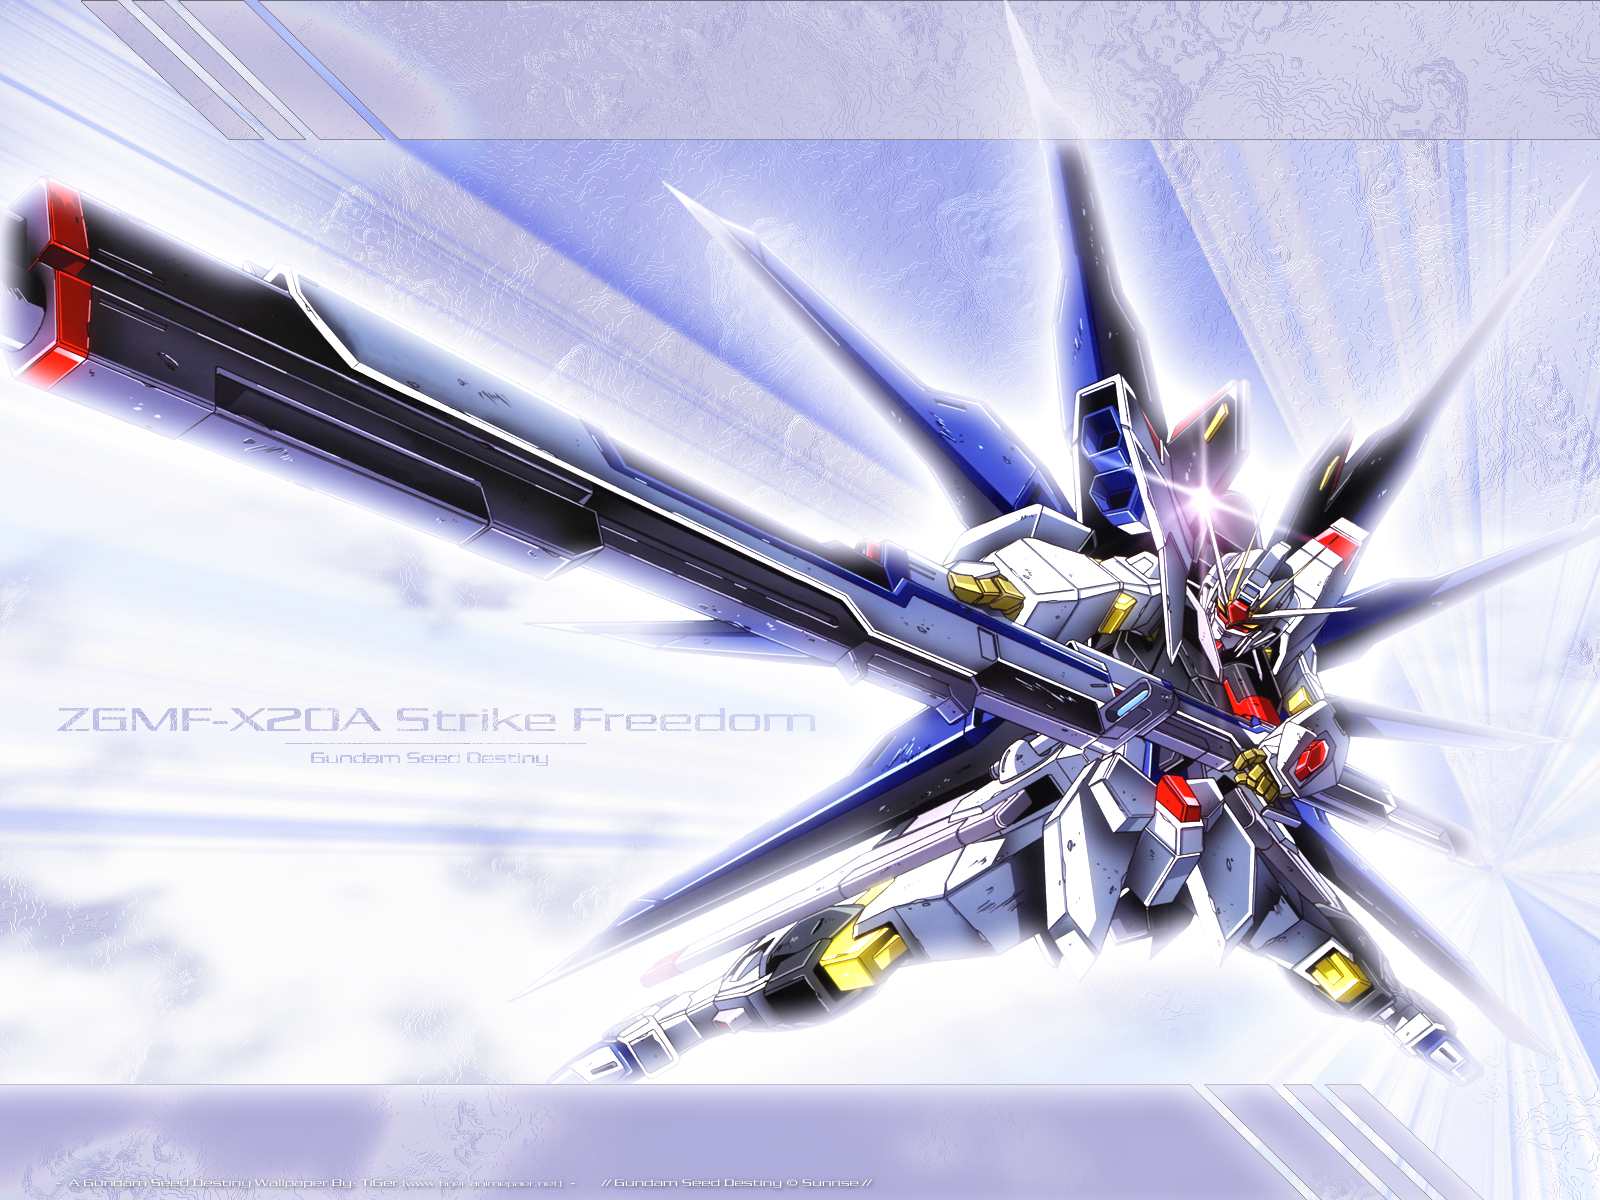 Gundam Seed Destiny images GSD HD wallpaper and background photos 1600x1200